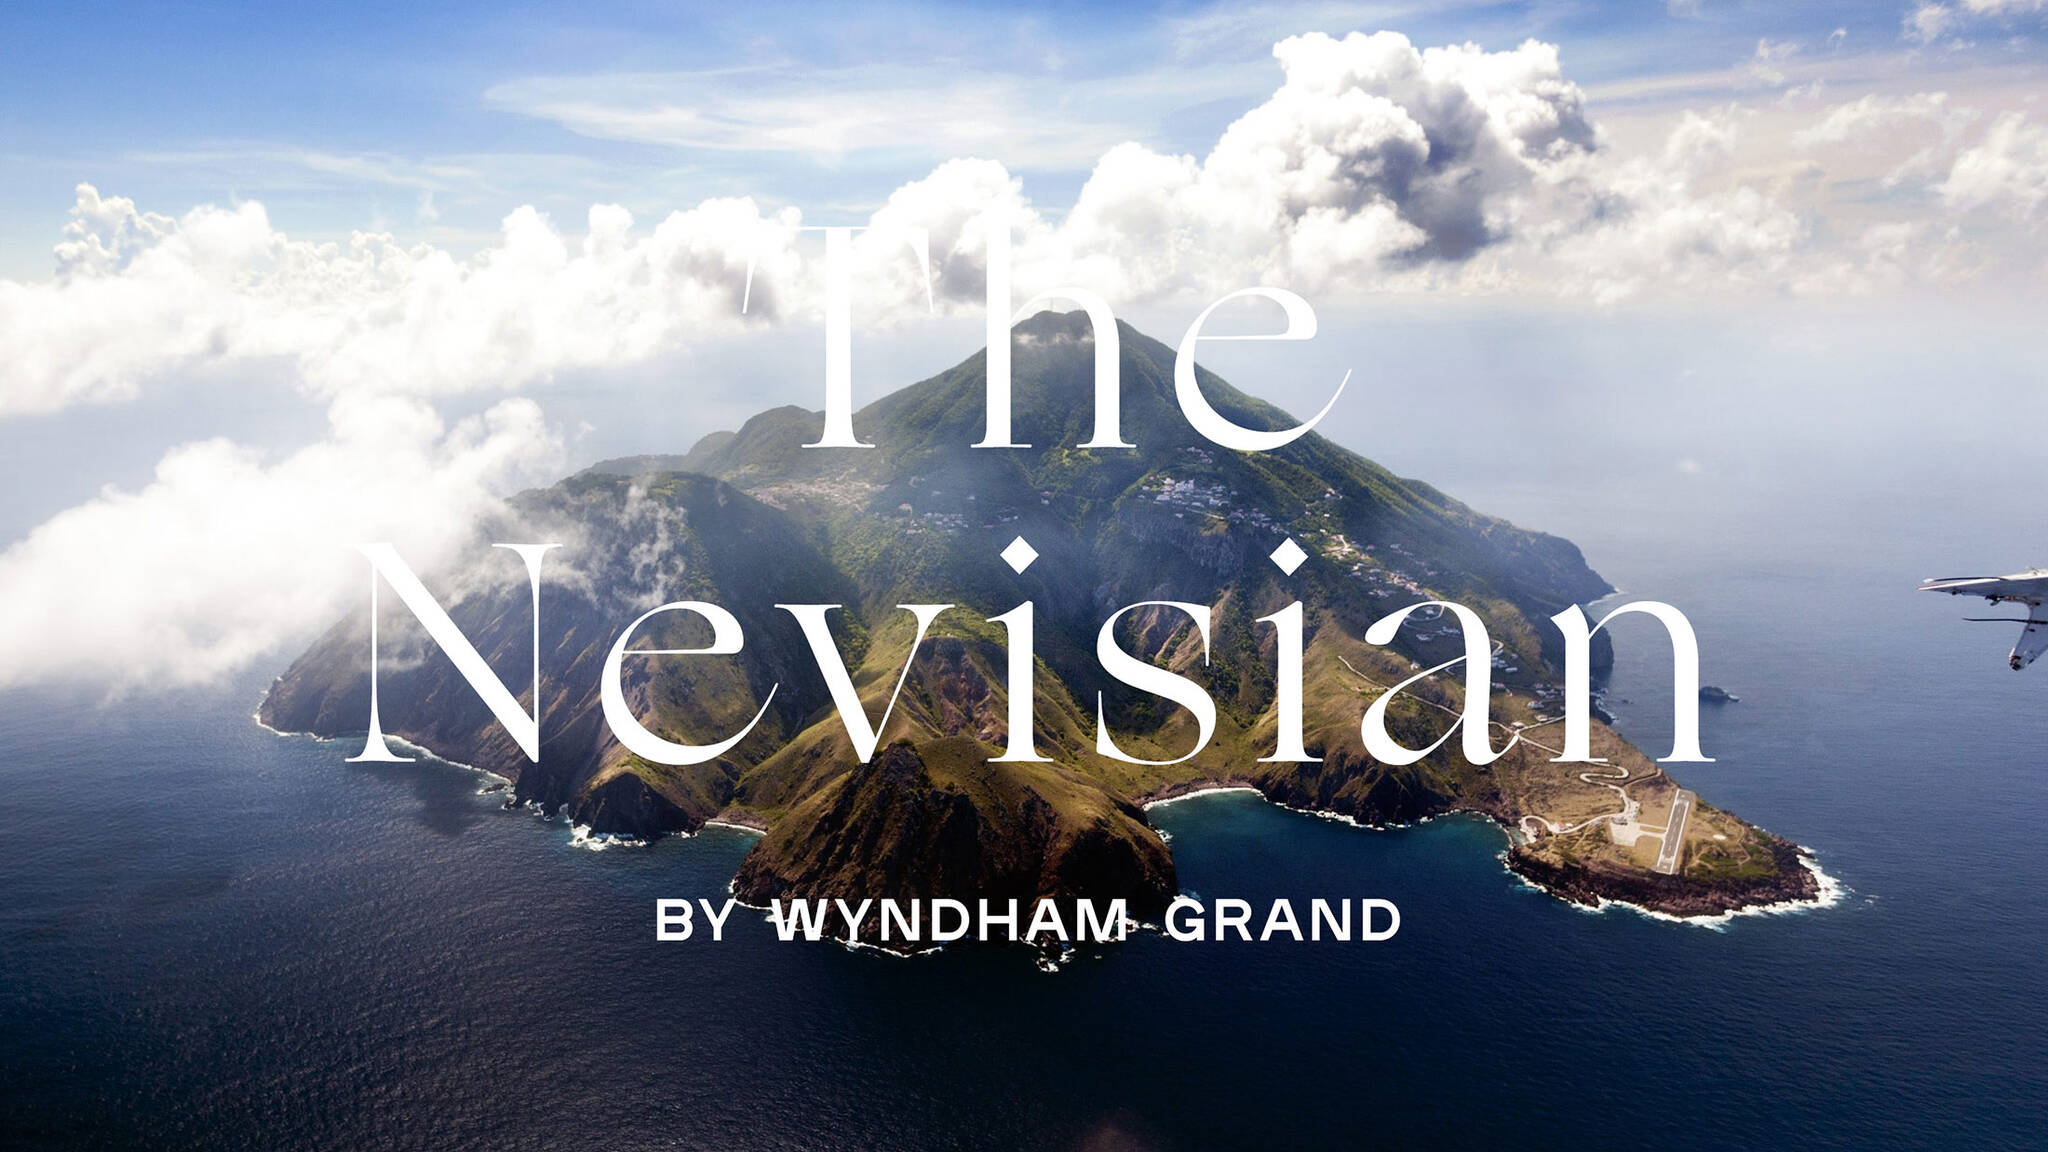 Logo over an aerial view of the island of Nevis where the Nevisian Luxury Resort project designed by the architecture studio Danny Forster & Architecture is located. The Nevisian is a luxury resort with restaurants, villas, spas, a conference center, and the world's first 5-star modular hotel